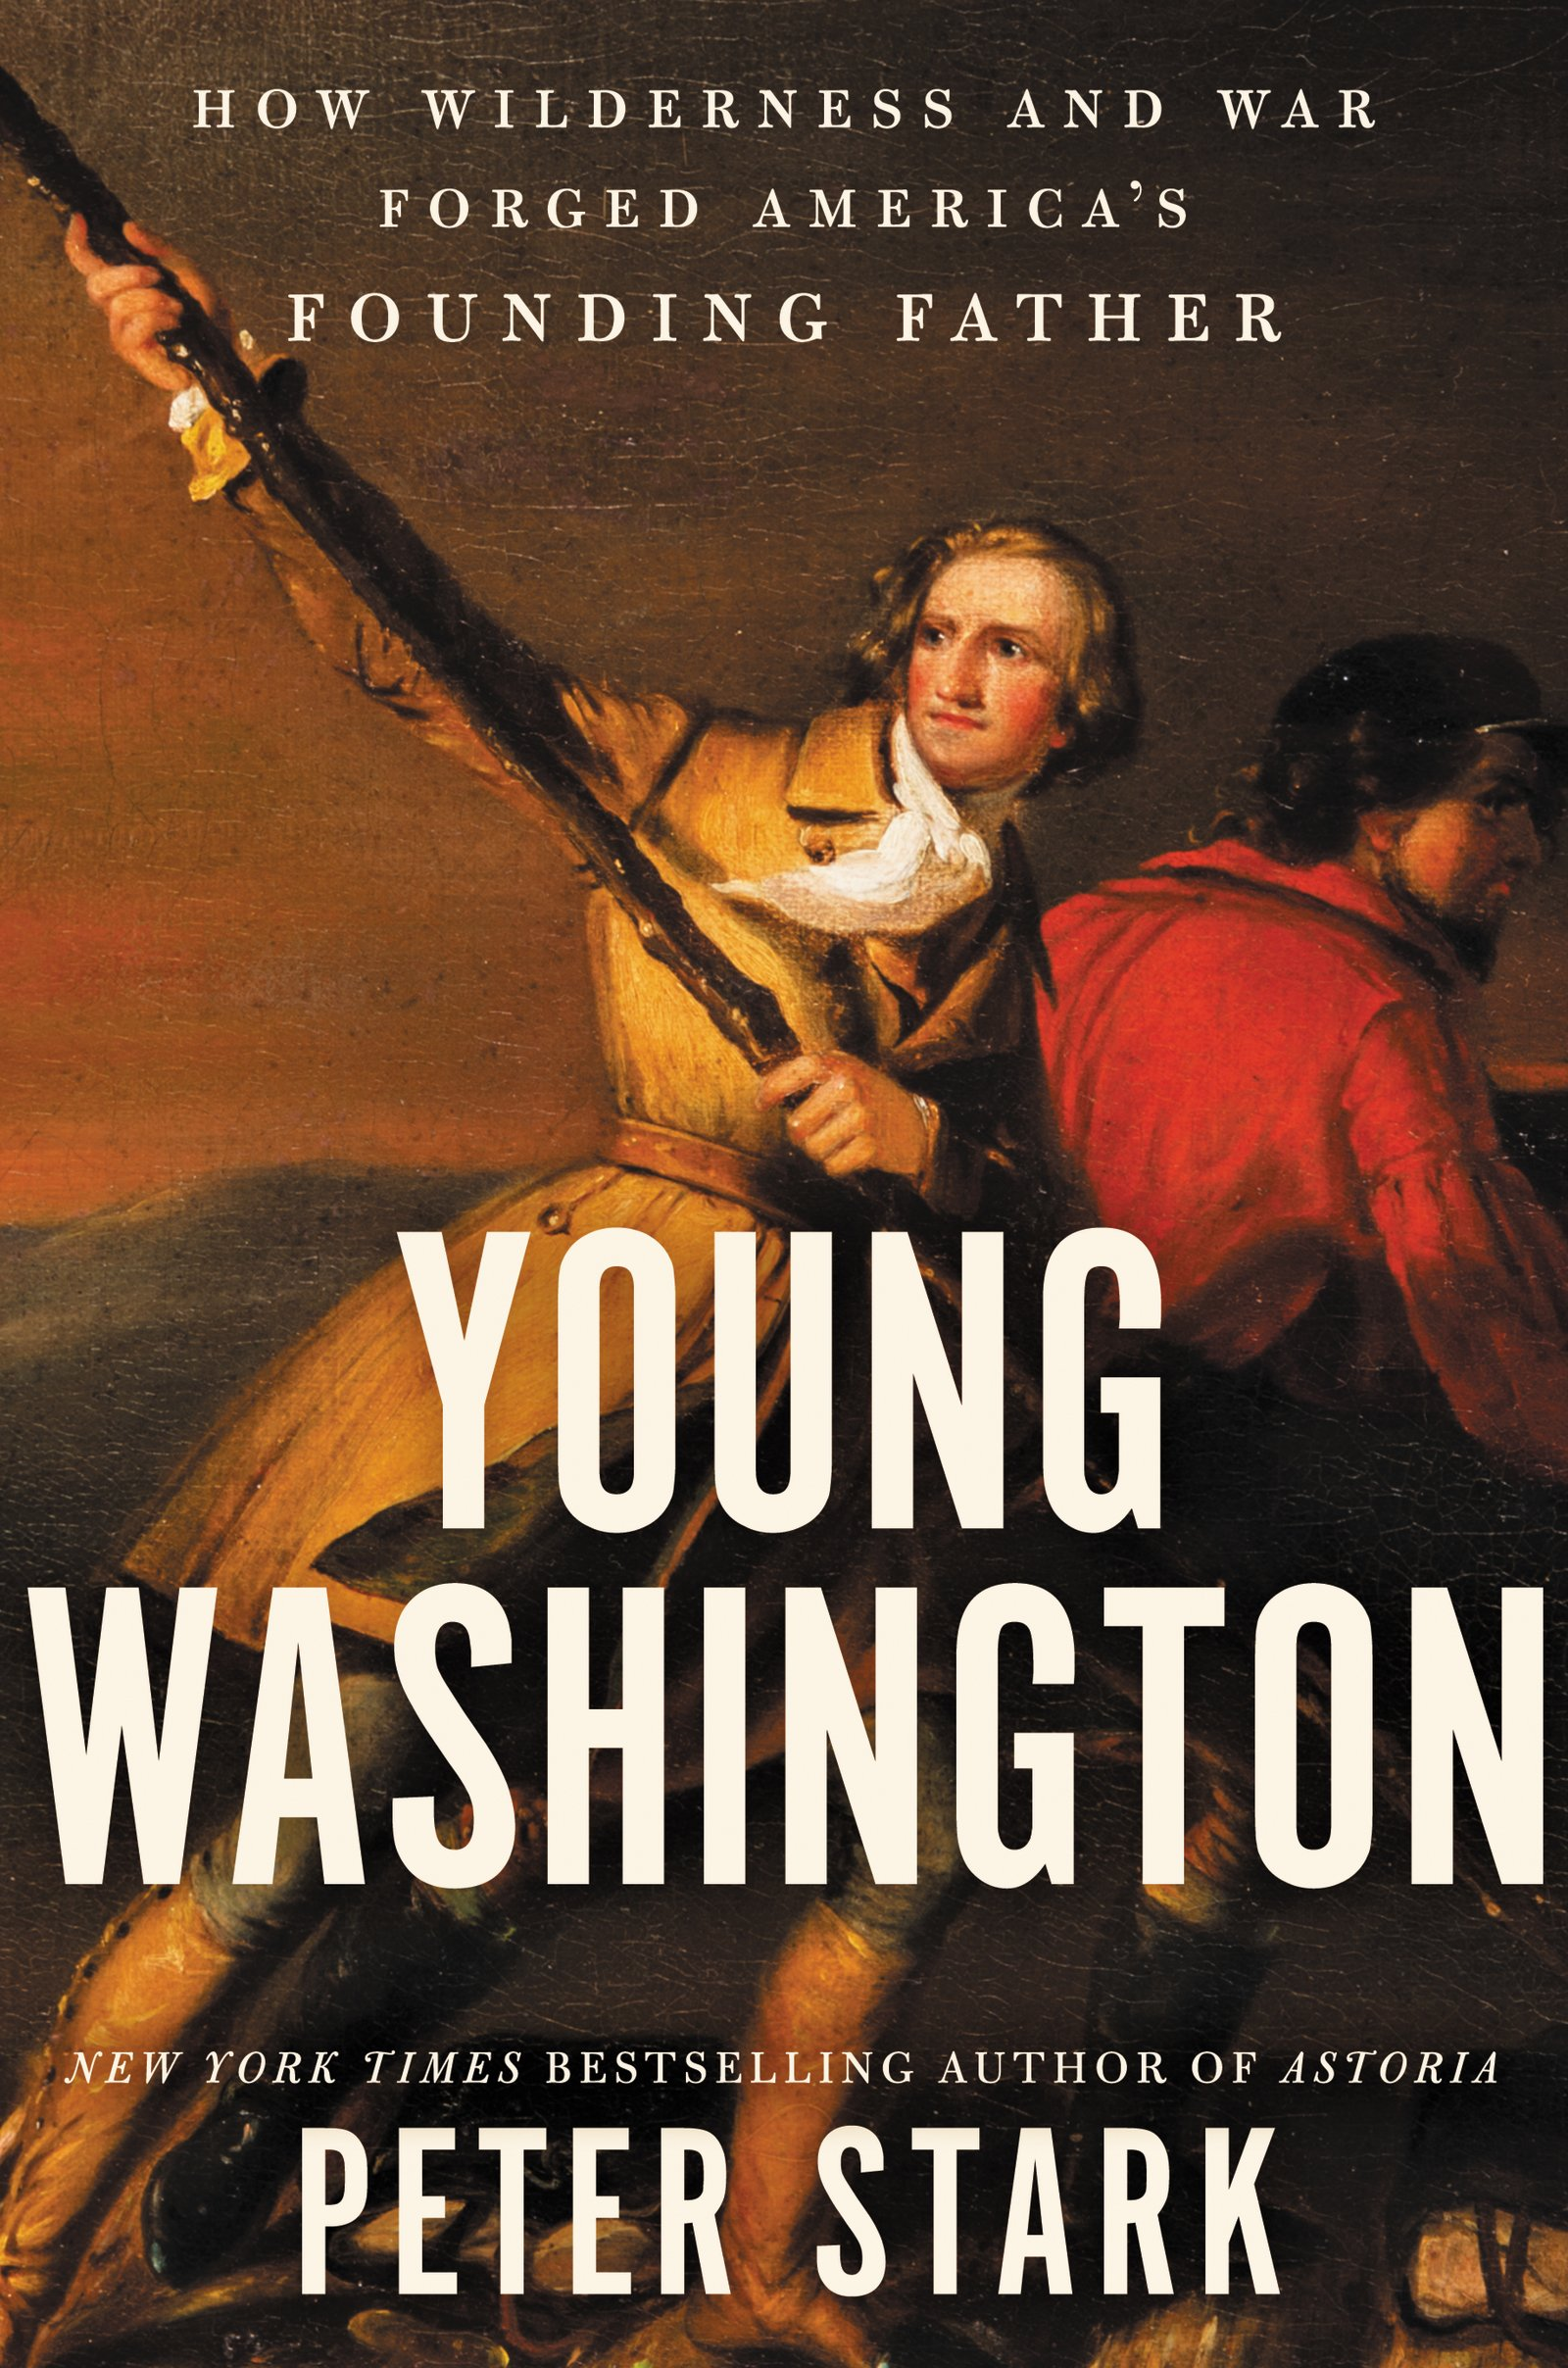 Image result for young washington peter stark